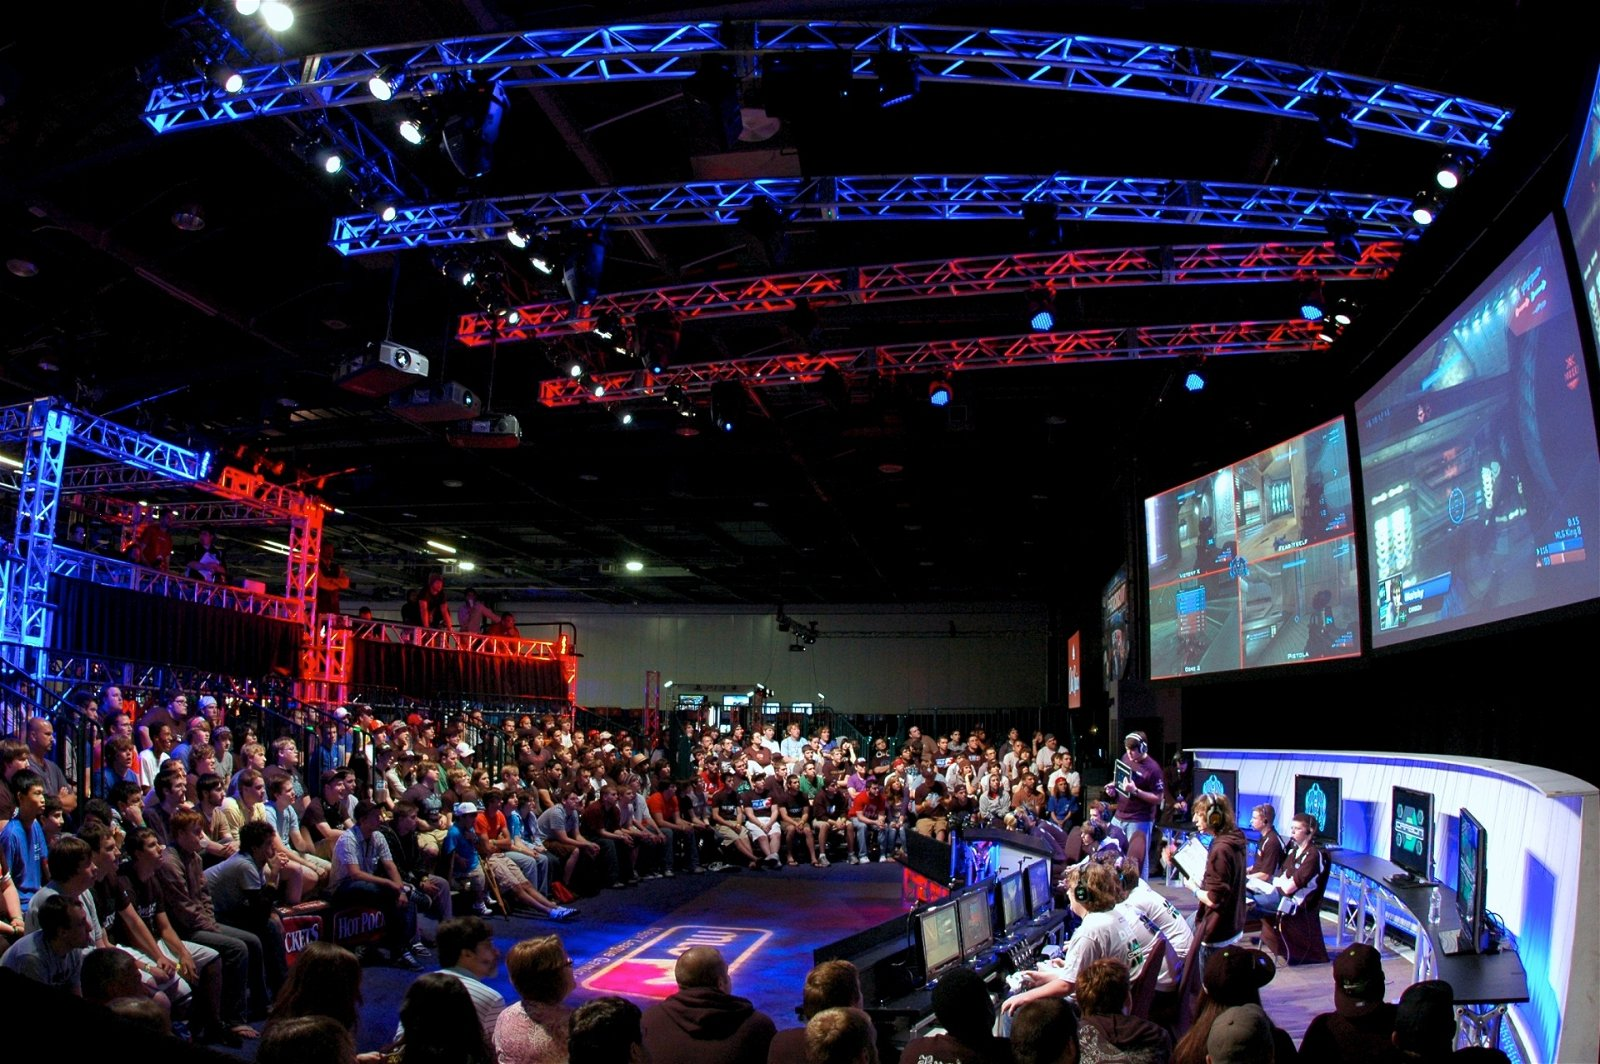 Activision Blizzard's MLG Comes Under New Leadership